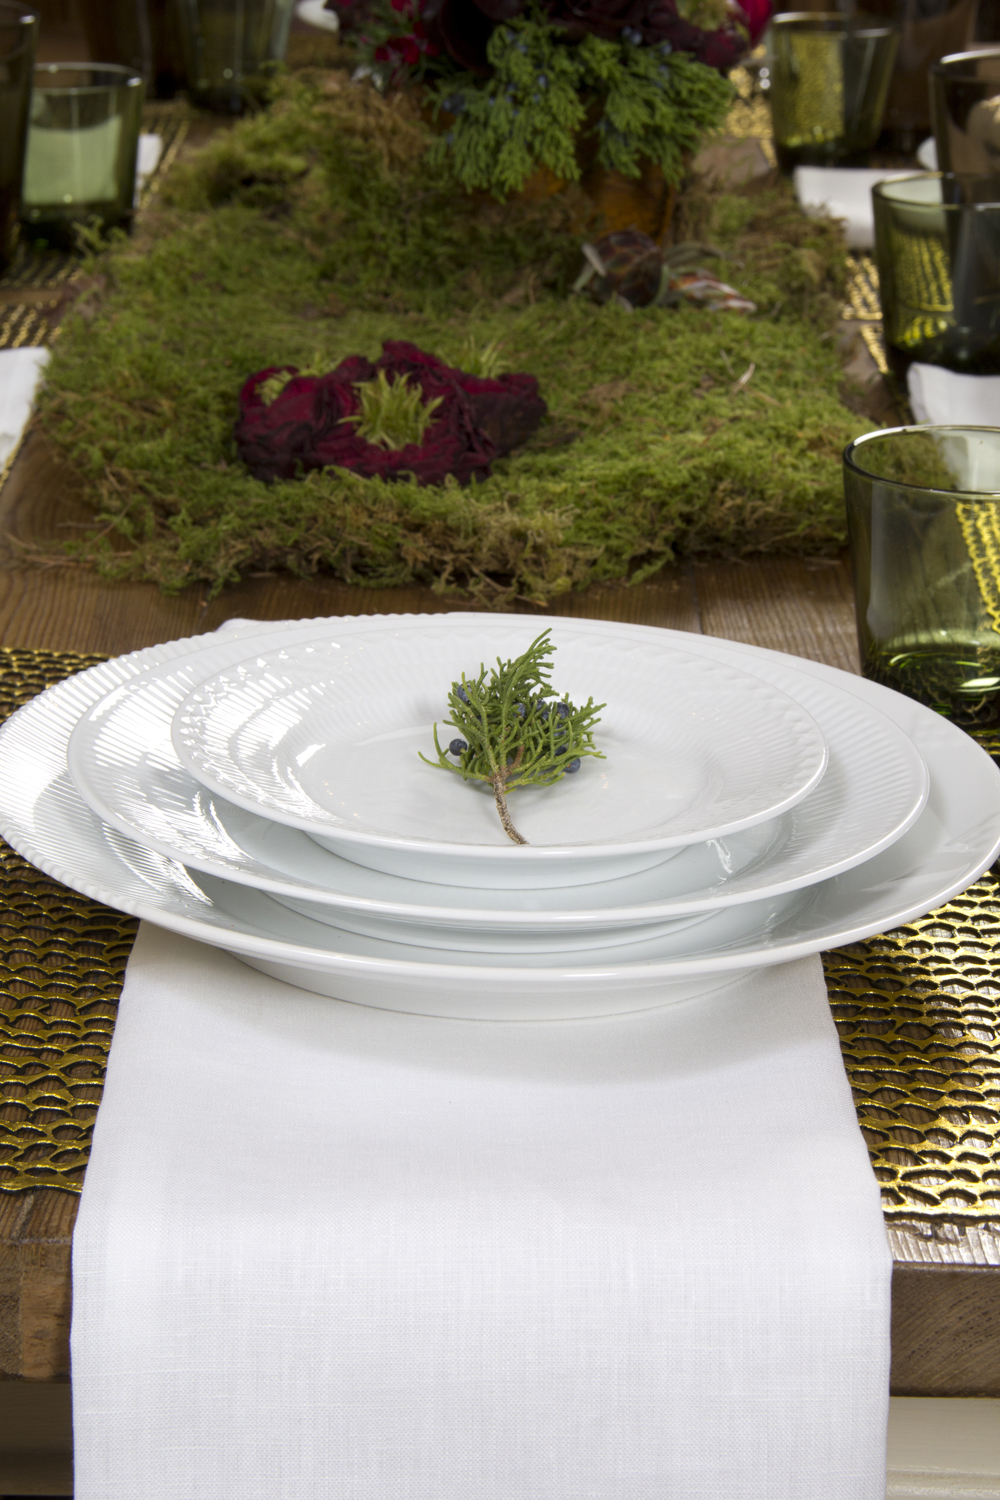 Royal Copenhagen Dinnerware and Libeco Home Everyday Napkins